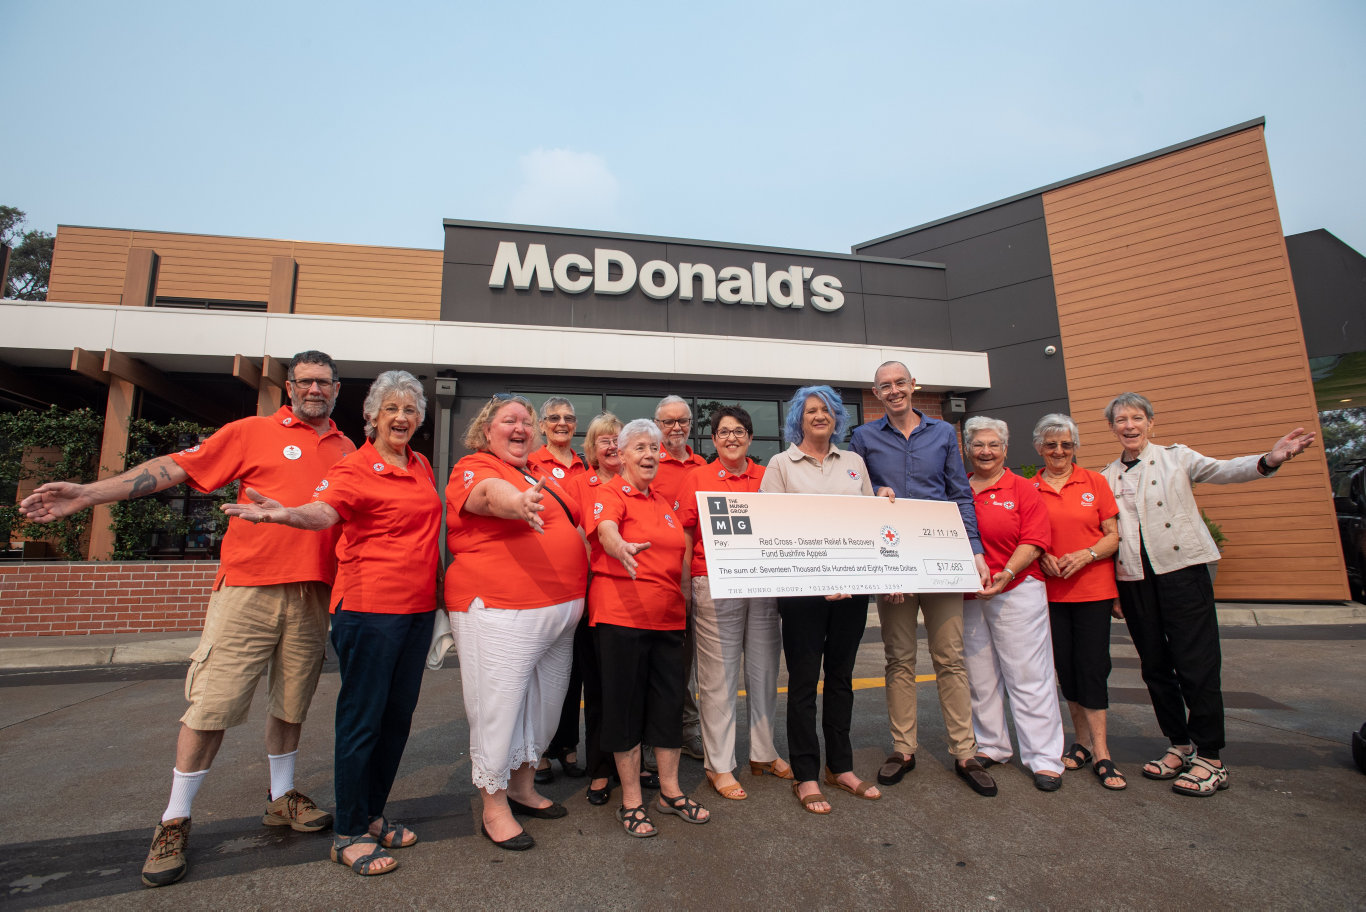 Dave Munro, who owns the Coffs Harbour and Grafton McDonalds donated funds this morning to the Red Cross Bushfire Appeal.